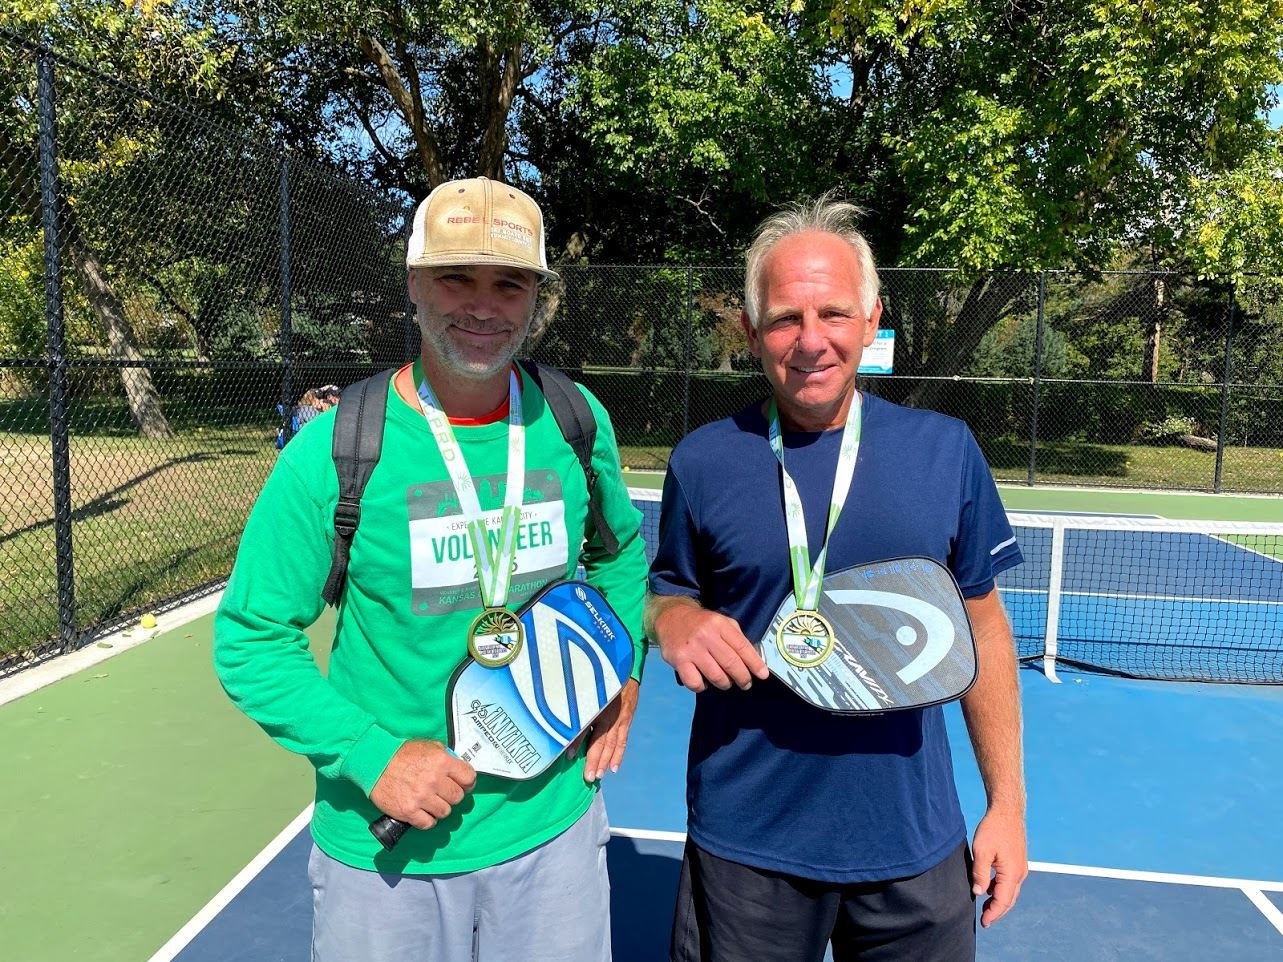 Man in green shirt and man in blue shirt holding pickleball paddles and displaying their medals.